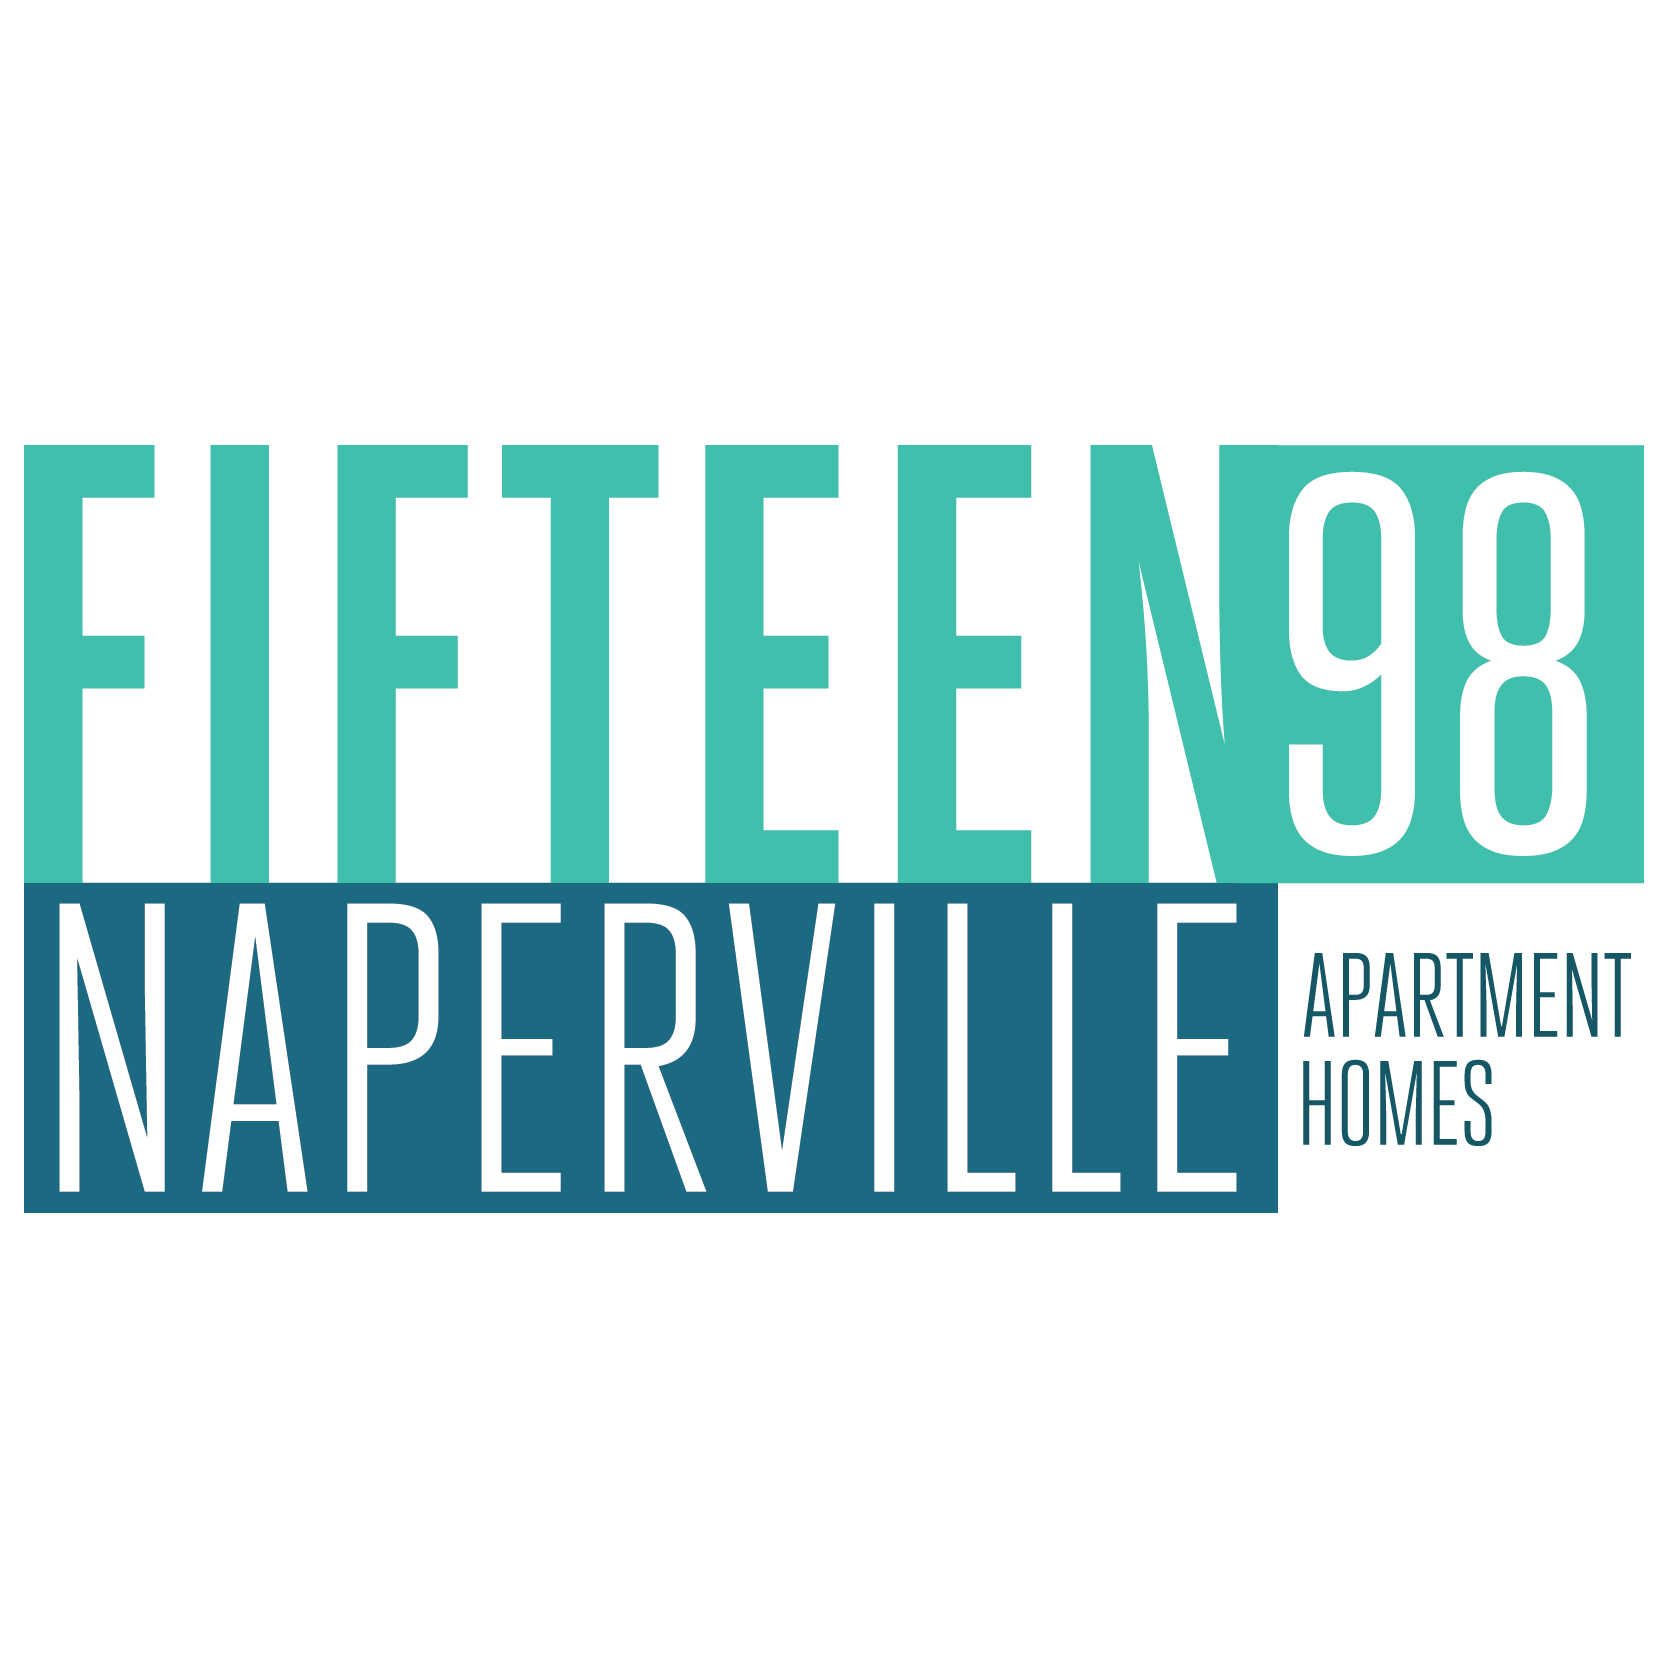 Fifteen98 Naperville Apartment Homes